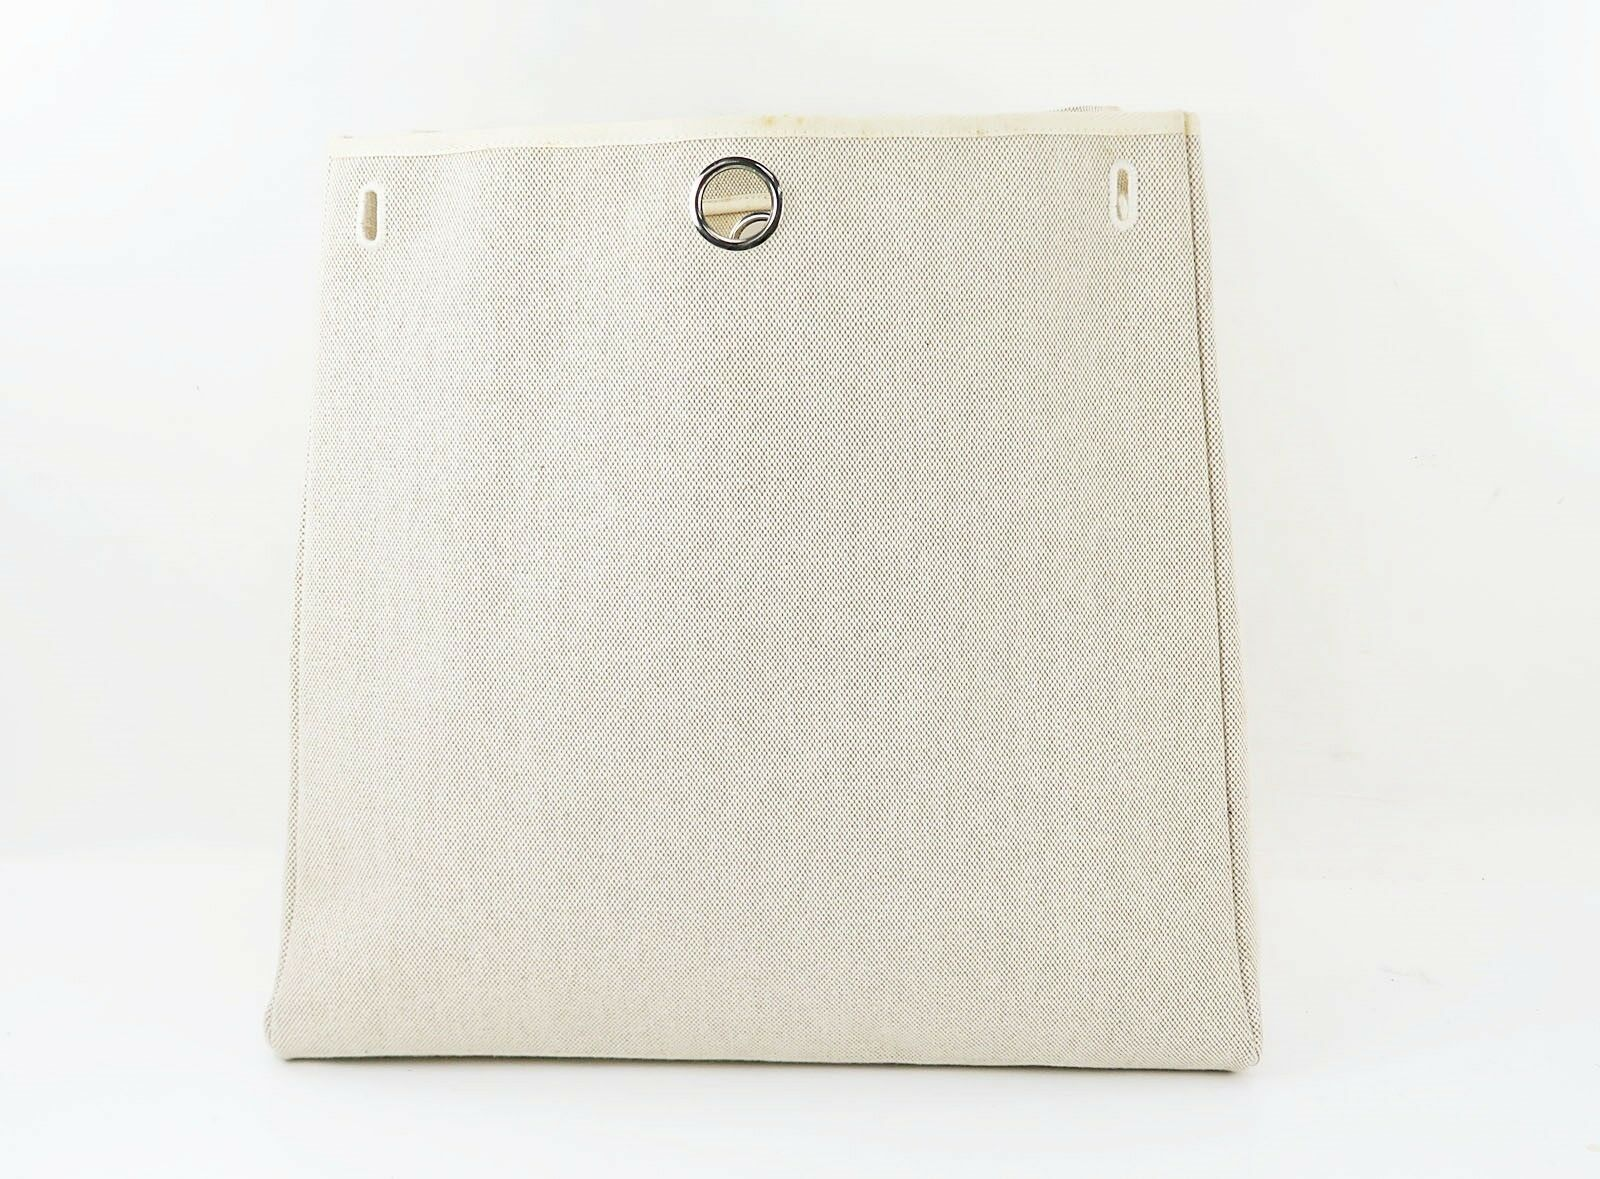 Auth HERMES Her Bag 2 in 1 Beige Canvas and Leather Hand Shoulder Bag #31320 image 11